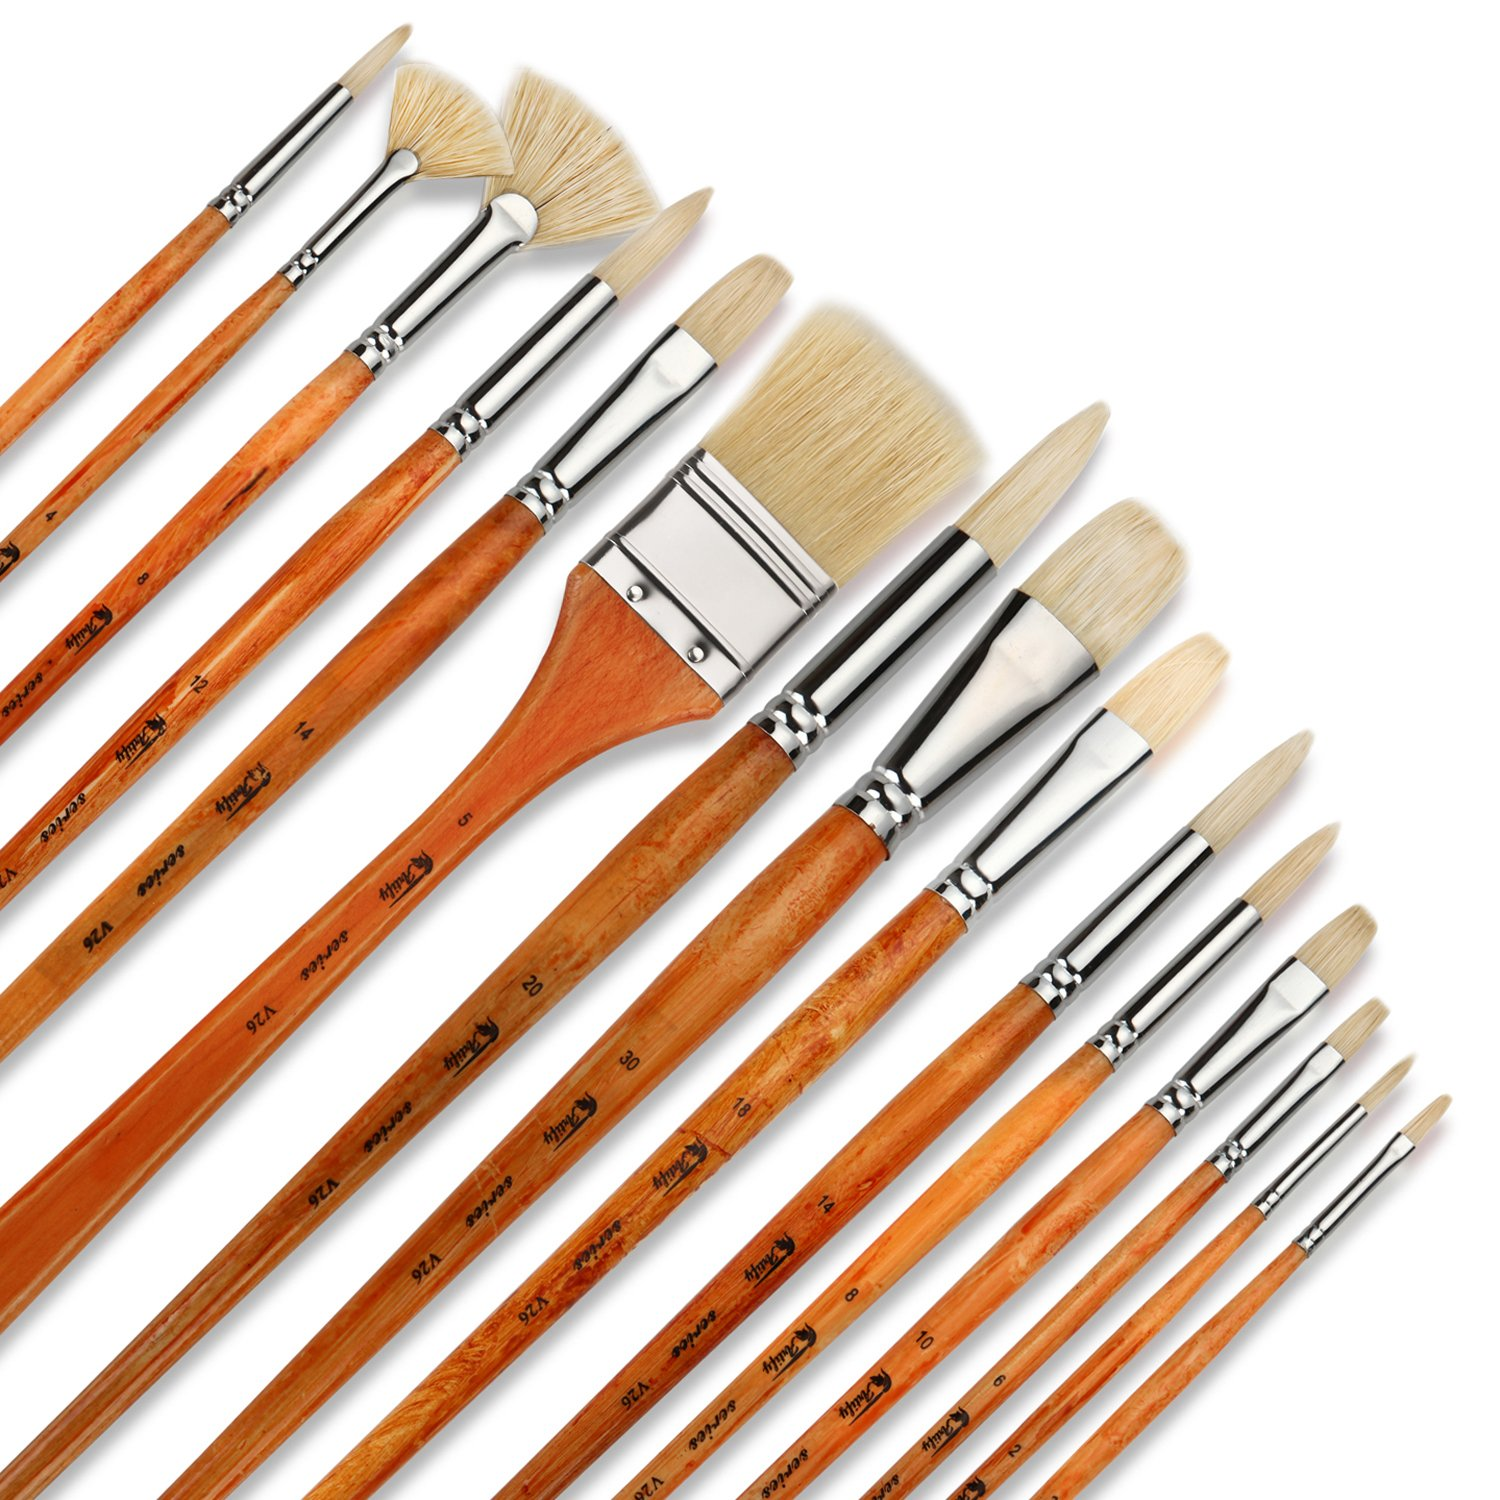 Artify 15 pcs Professional Paint Brush Set Perfect for Oil Painting with a Free Carrying Box by Artify Art Supplies